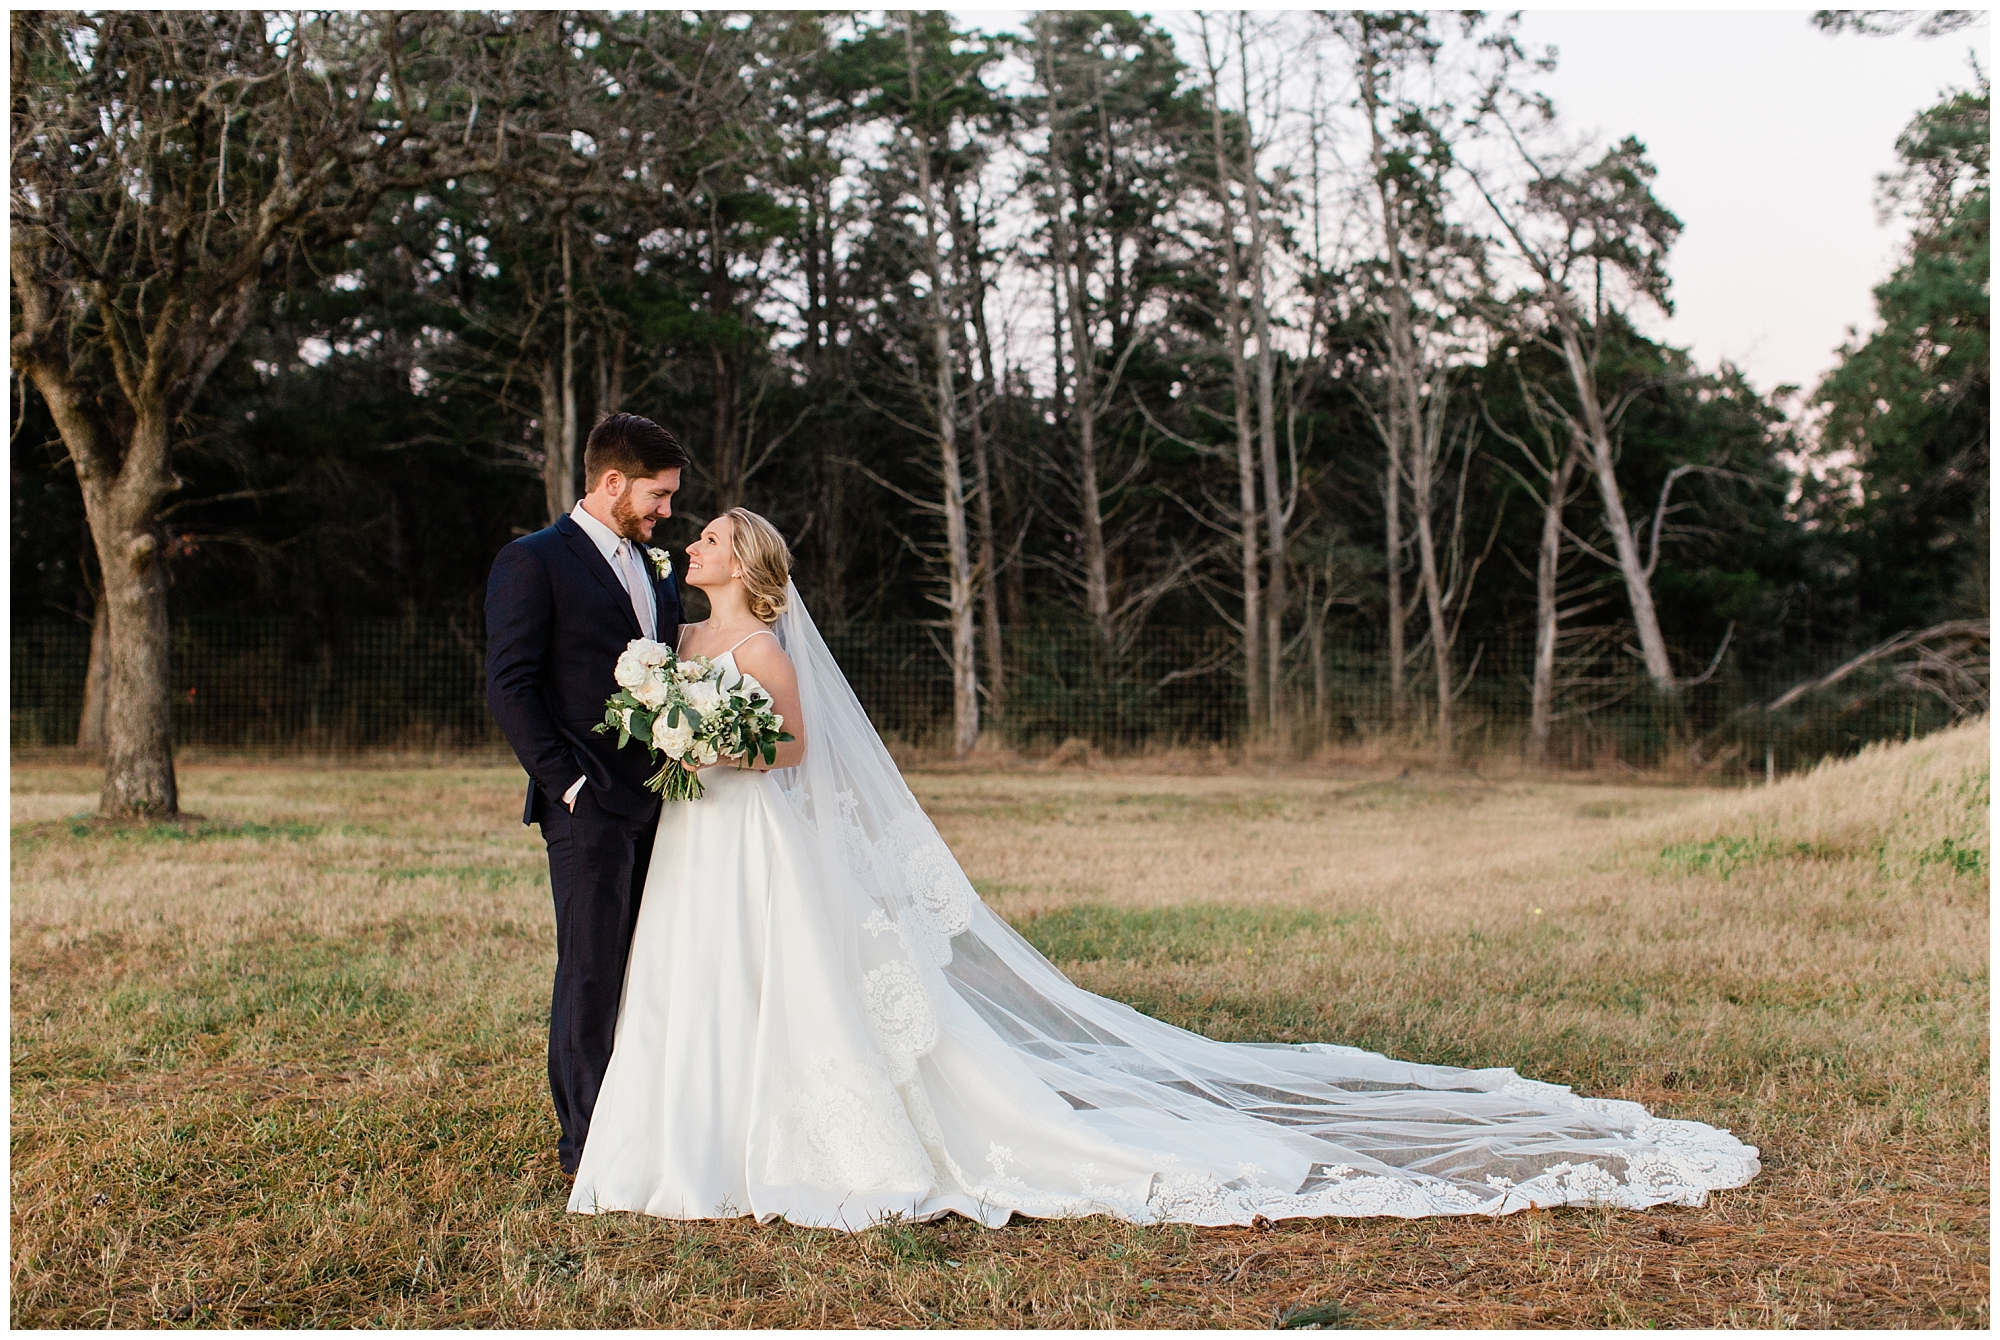 The_Vine_at_New_Ulm_Wedding_Kristina_Ross_Photography_0001.jpg